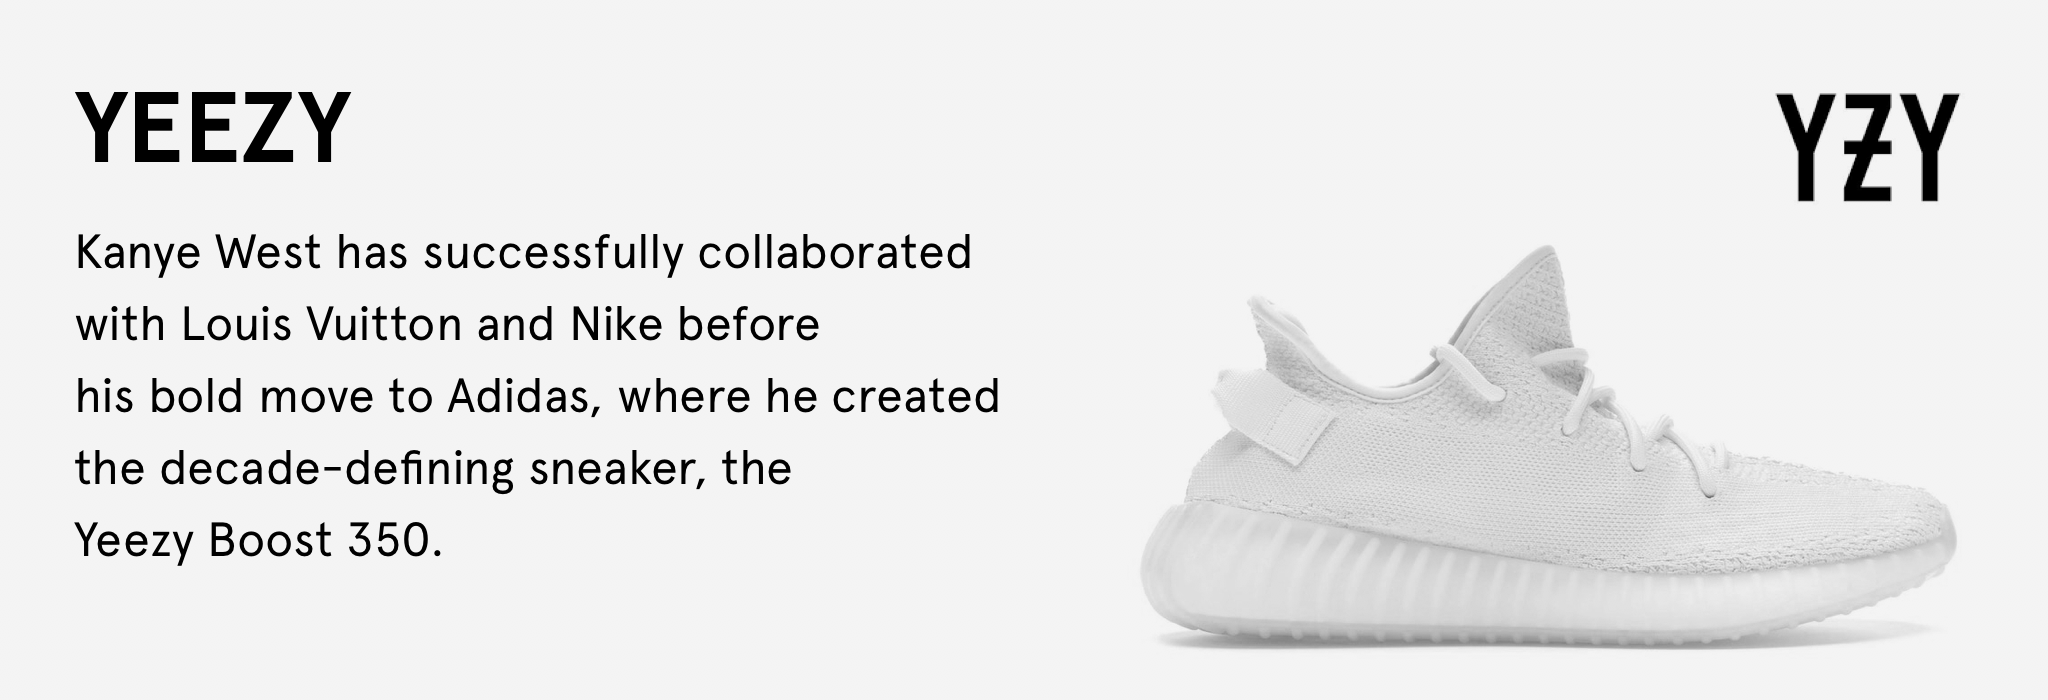 Kanye West has successfully collaborated with Louis Vuitton and Nike before his bold move to Adidas, where he created the decade-defining sneaker, the Yeezy Boost 350.